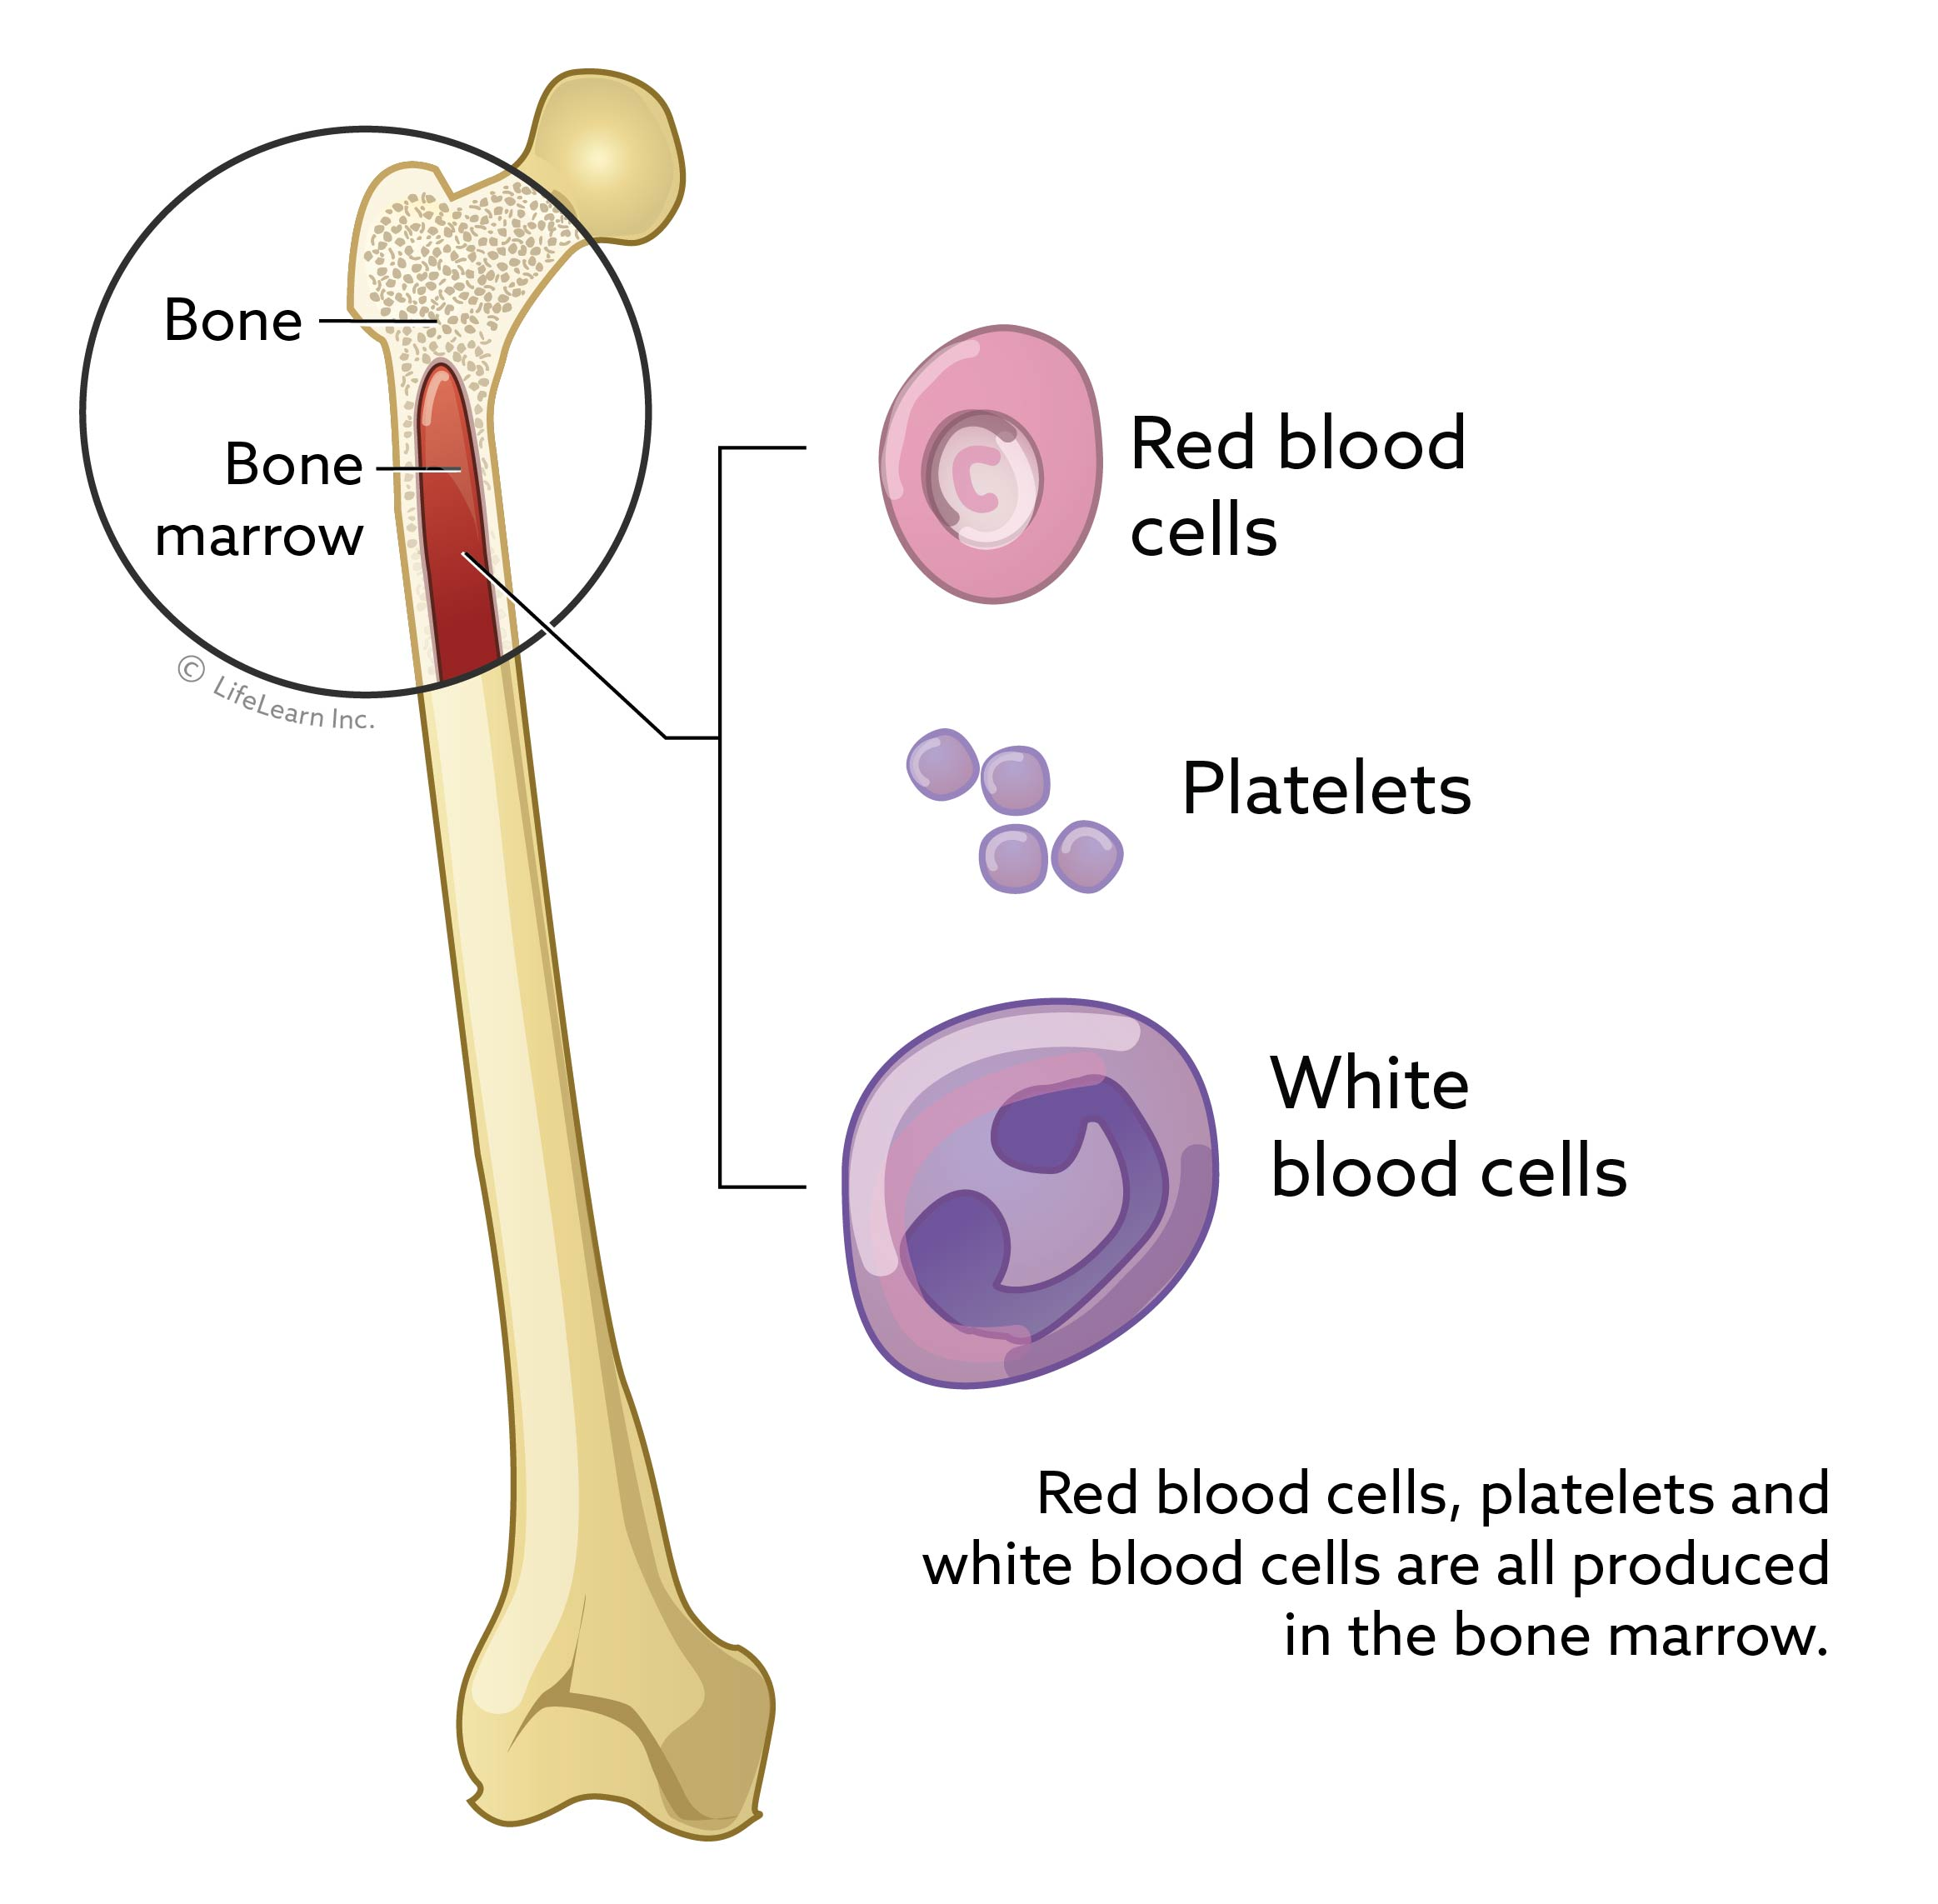 blood_cells_from_bone_2018-01